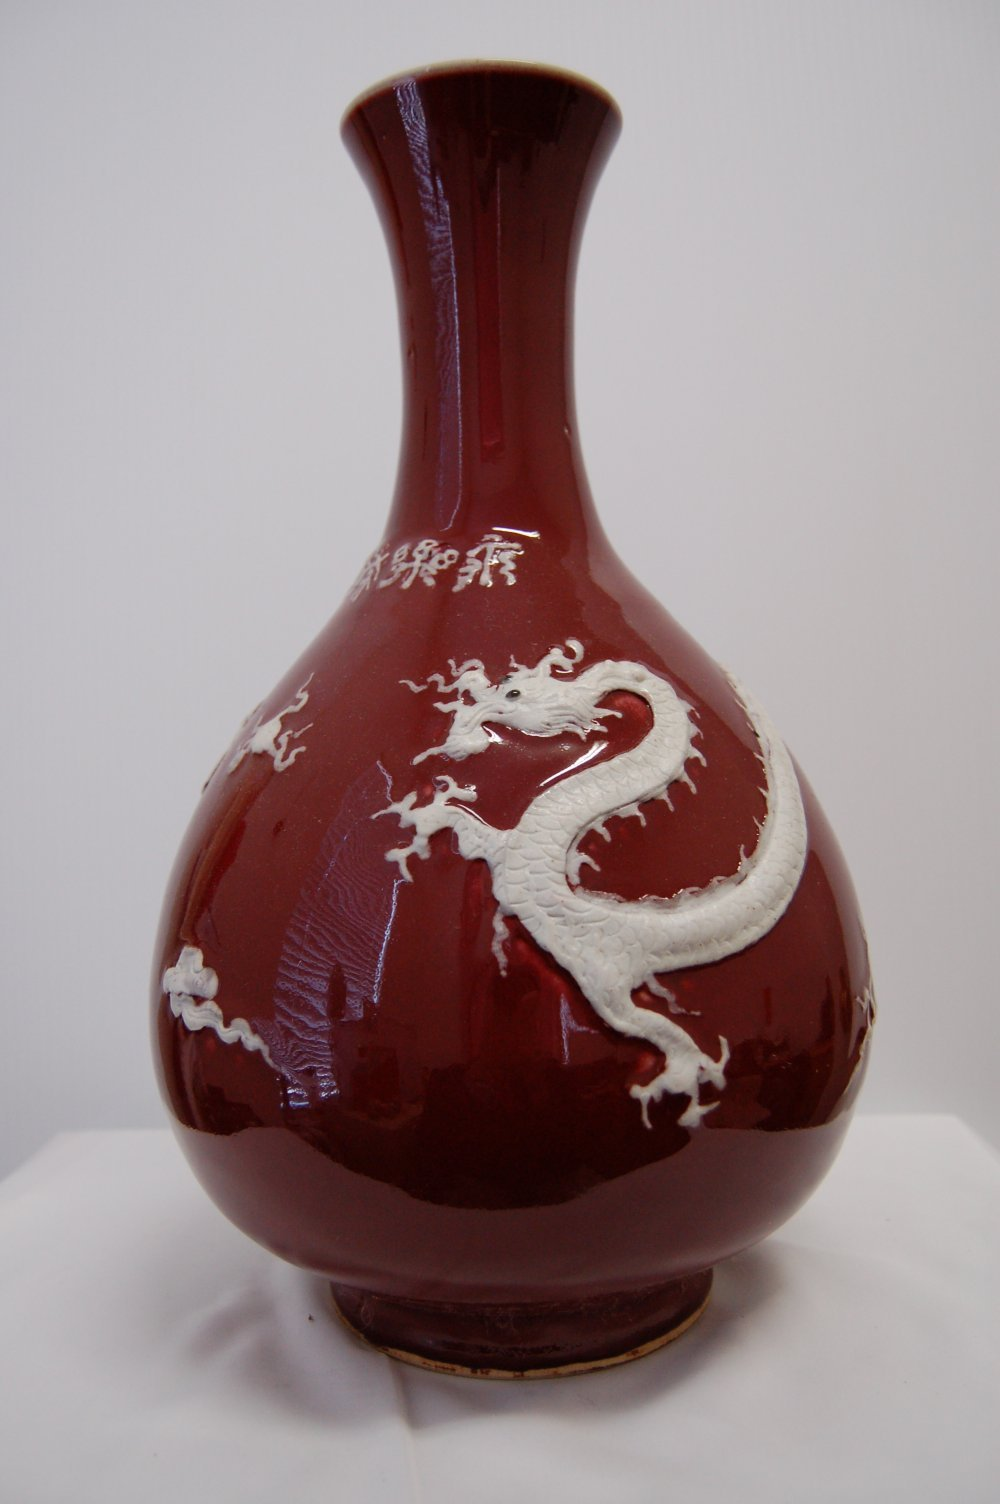 Red Porcelain Dragon & Phoenix Vase with small Flare Neck, 15 inches tall X 8 inches diameter